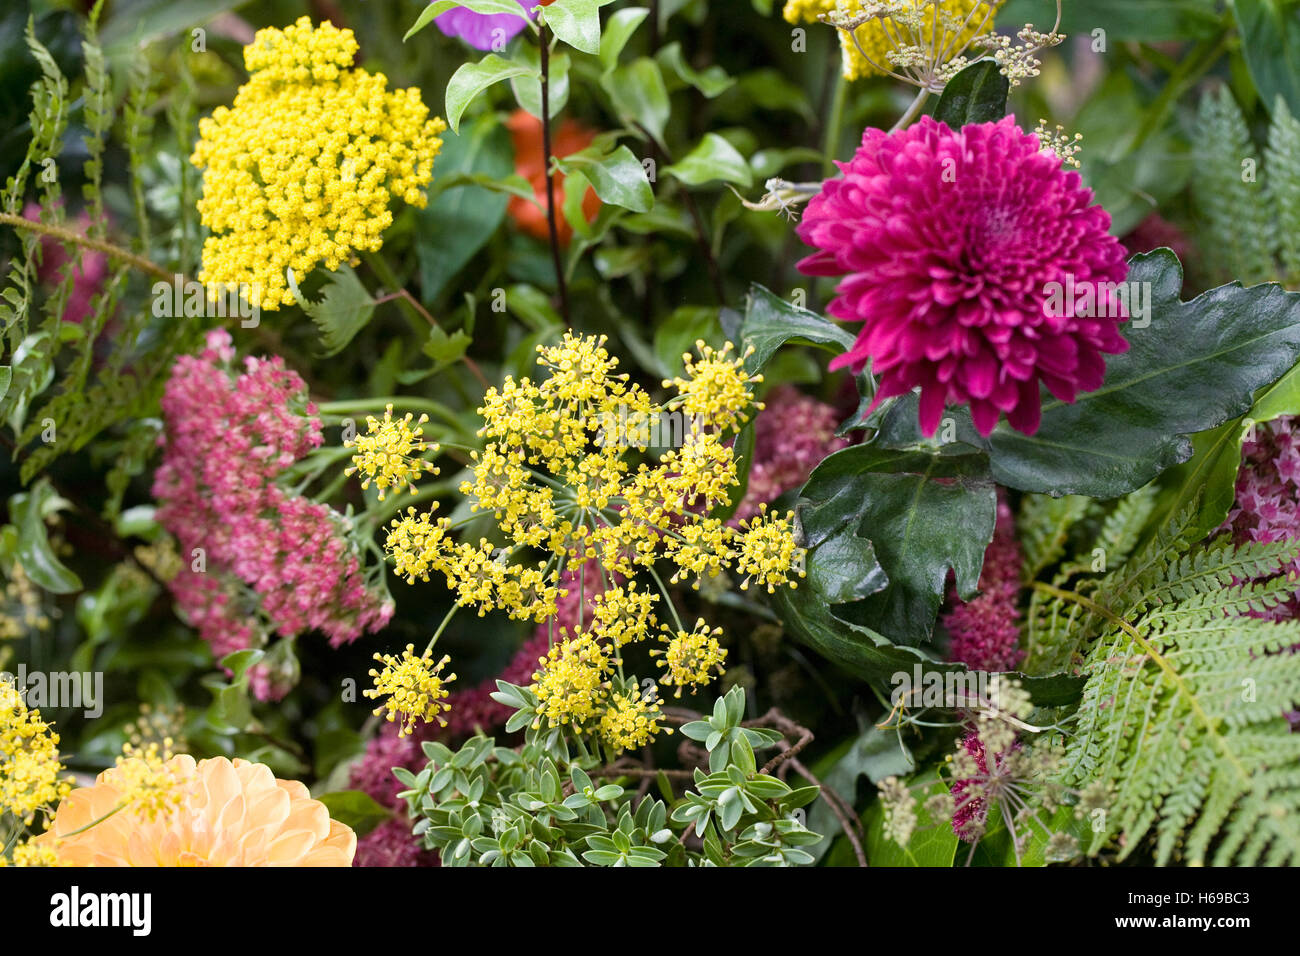 An arrangement of Autumn flowers. - Stock Image